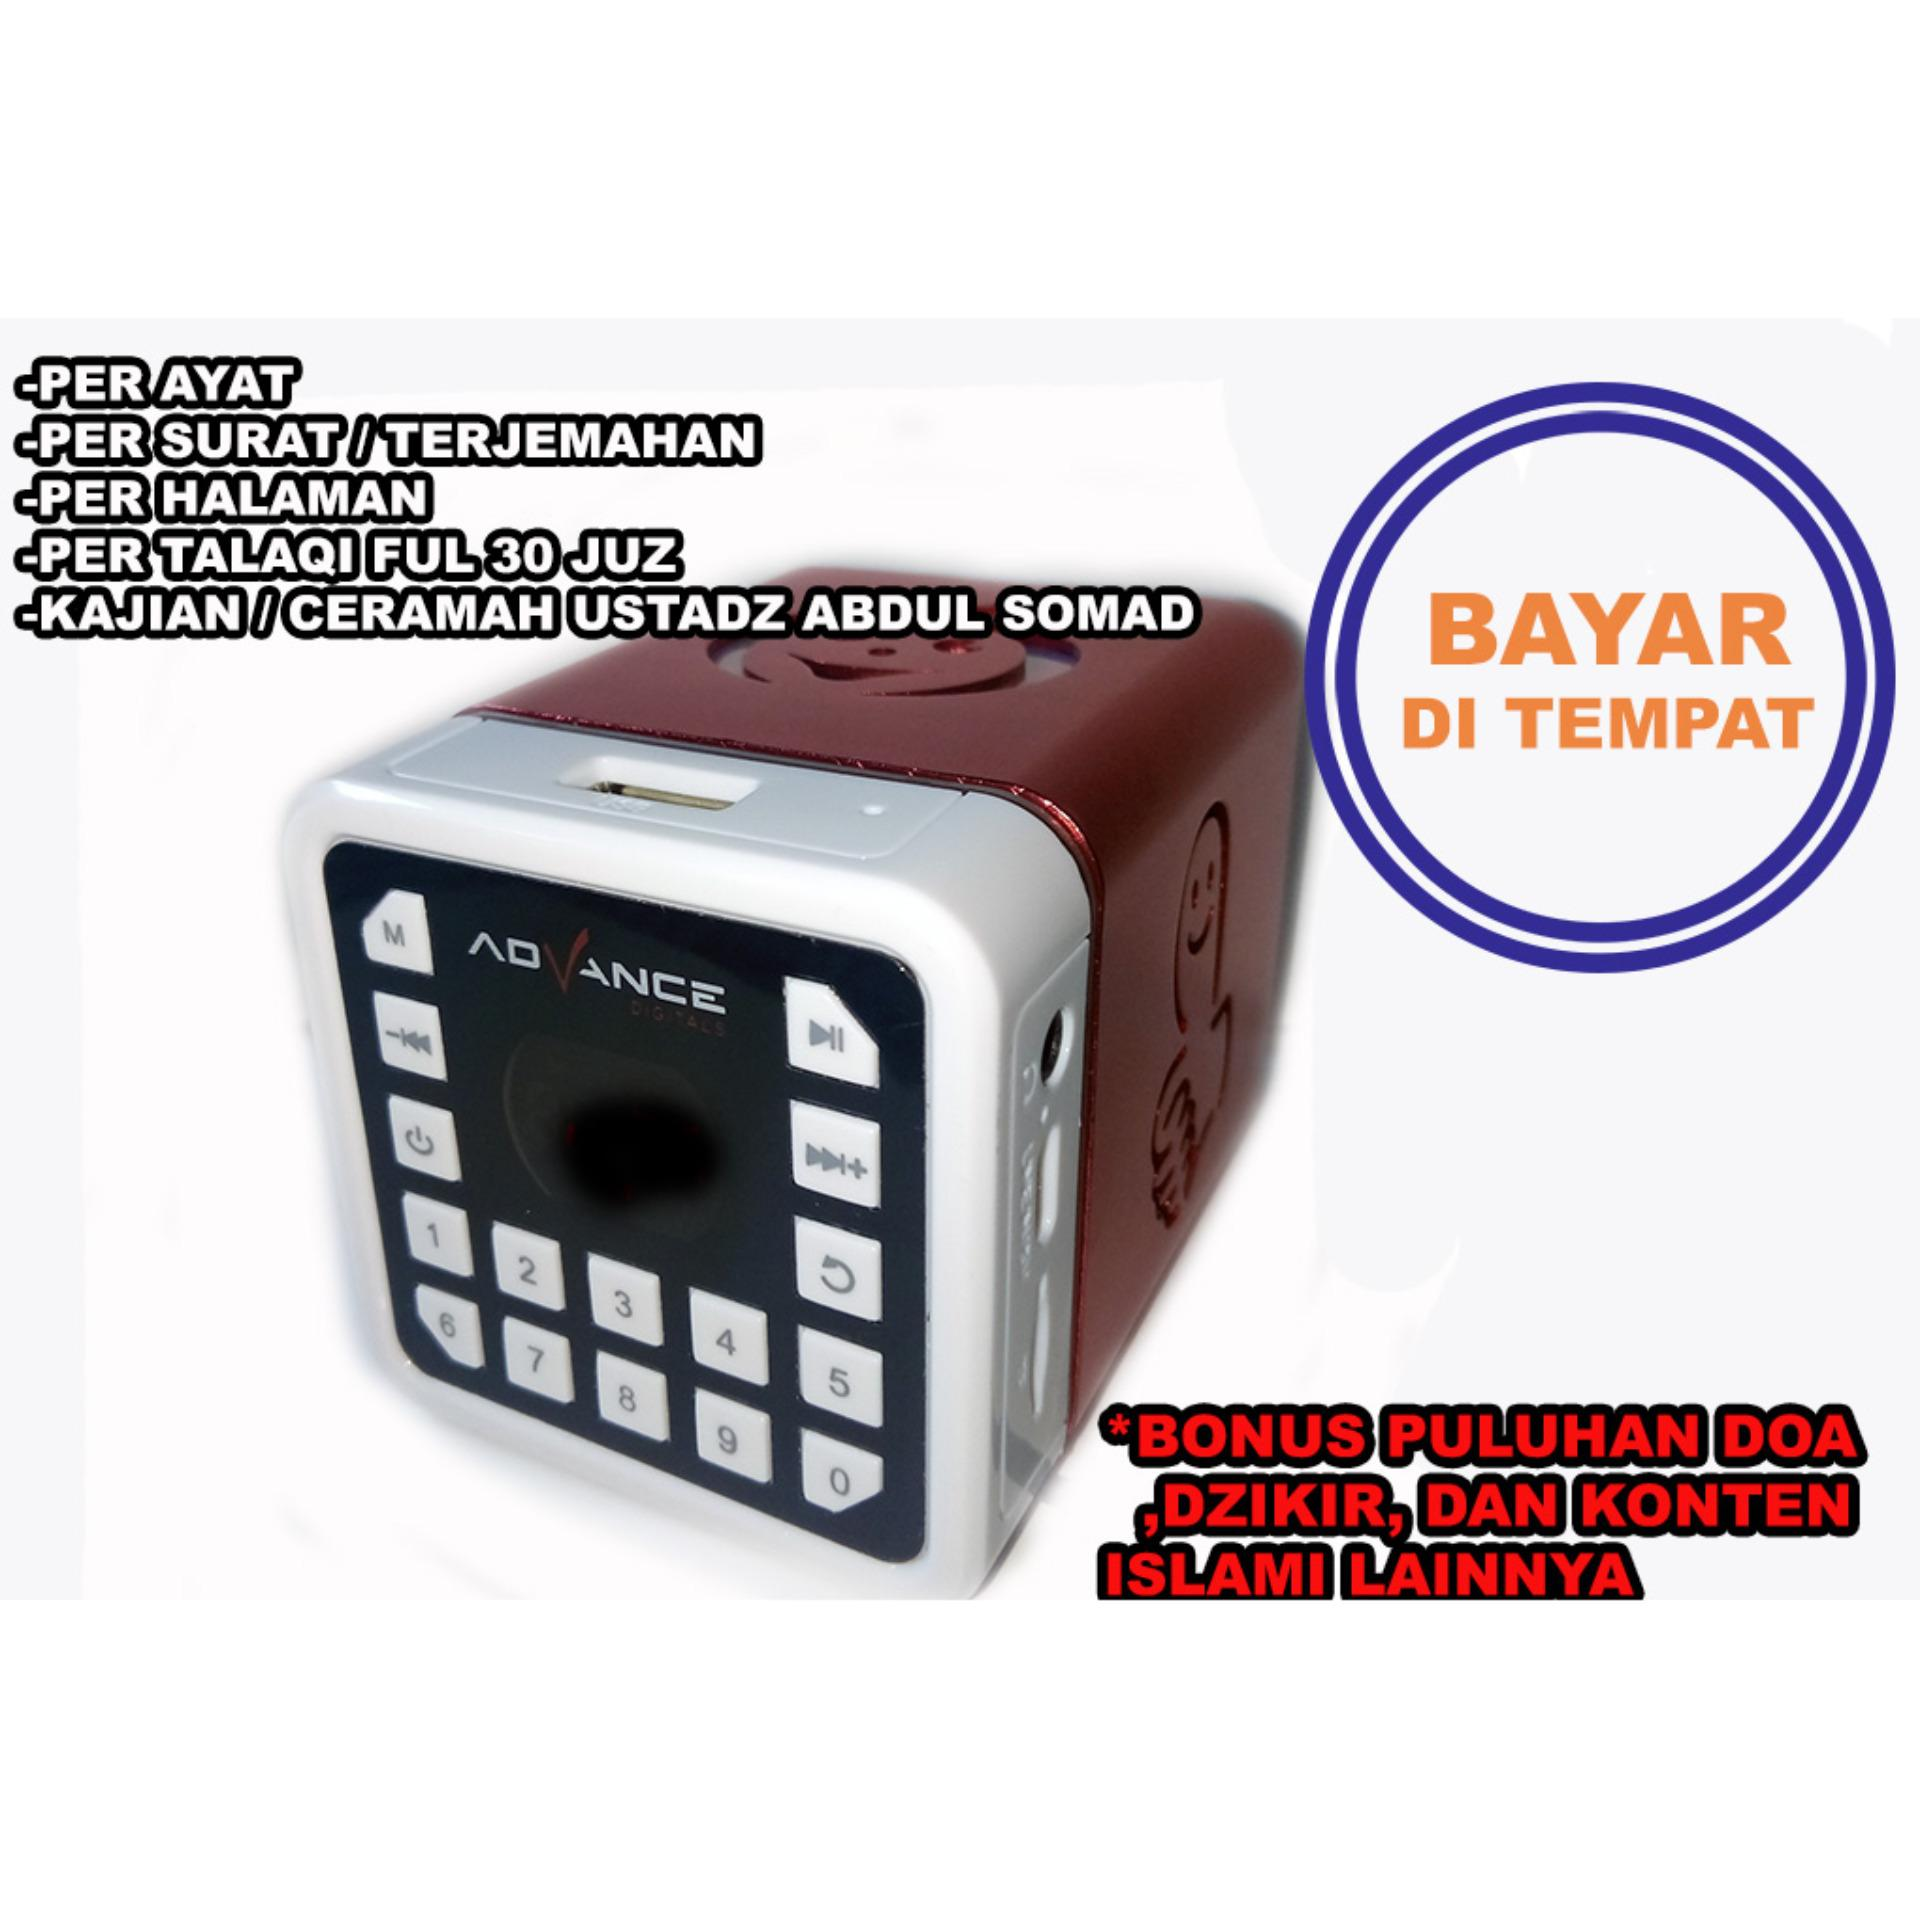 Kehebatan Speaker Portable Advance Tp 600 Audio Al Quran Murajaah Tp600 Original Hafal Alquran Mini Bisa Dikantong